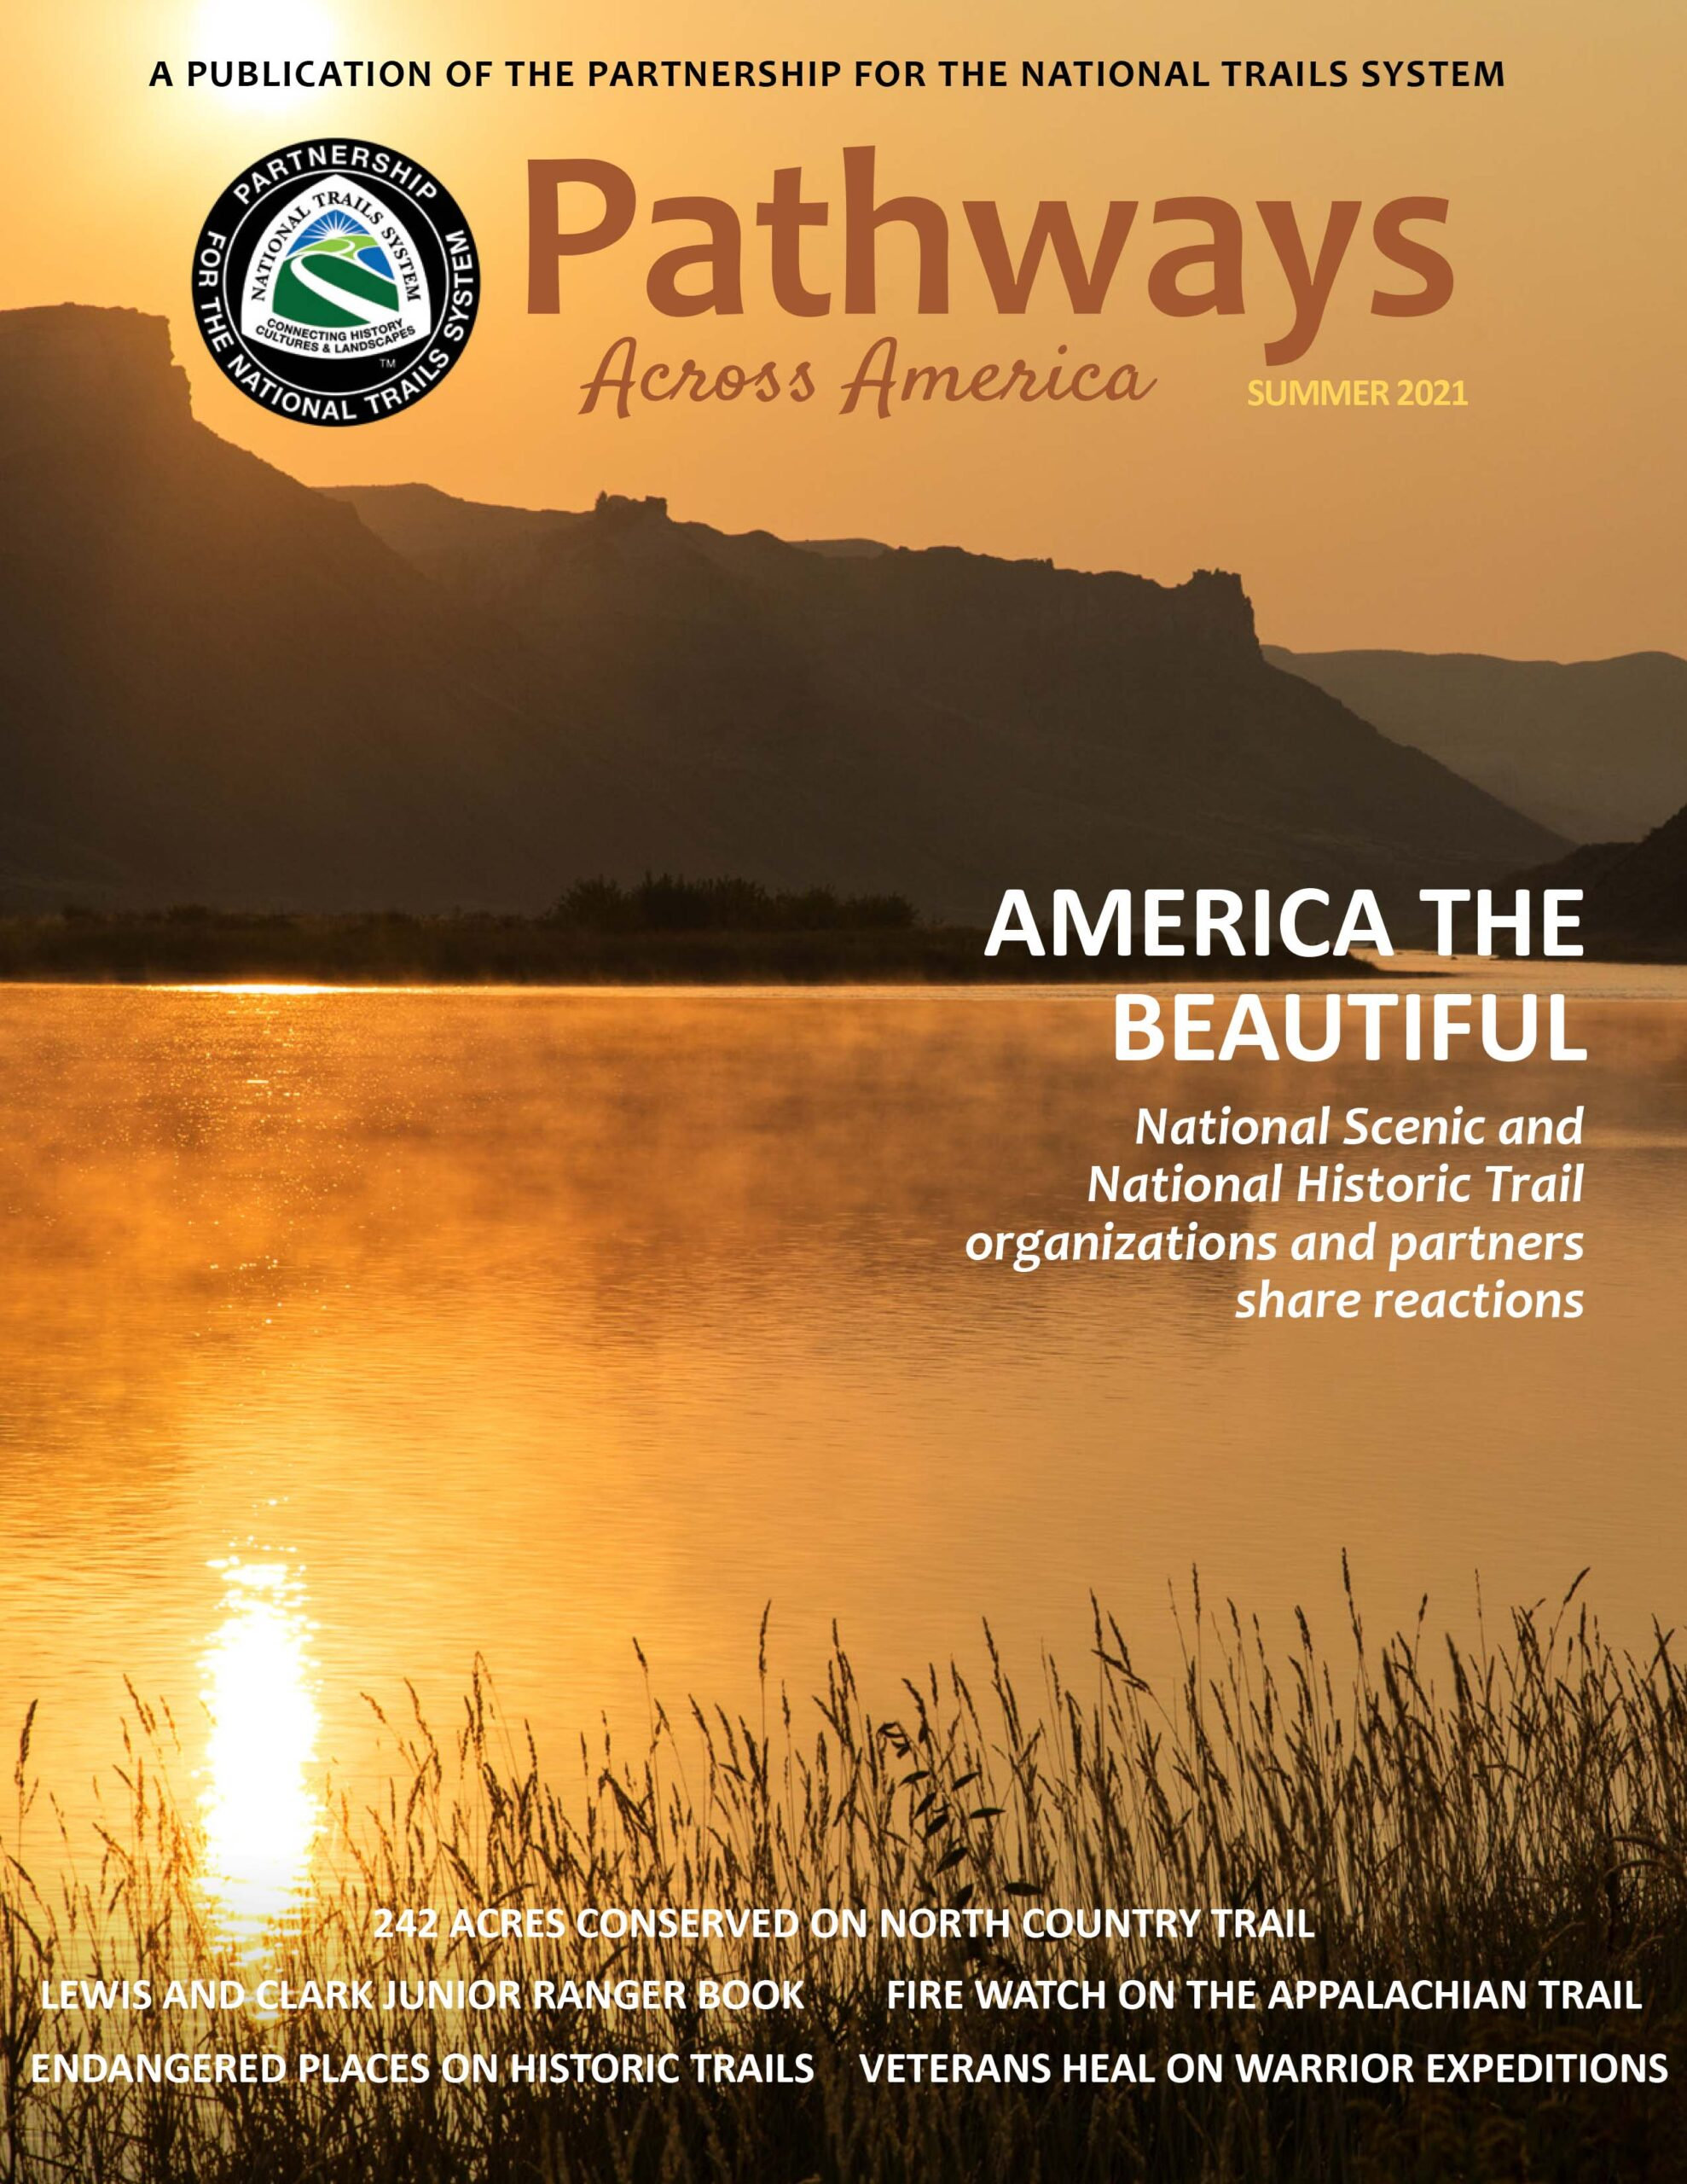 Summer 2021 Pathways cover features an image of the Missouri River at twilight as the river is bathed in orange light and the mountains in the background appear as silhouettes